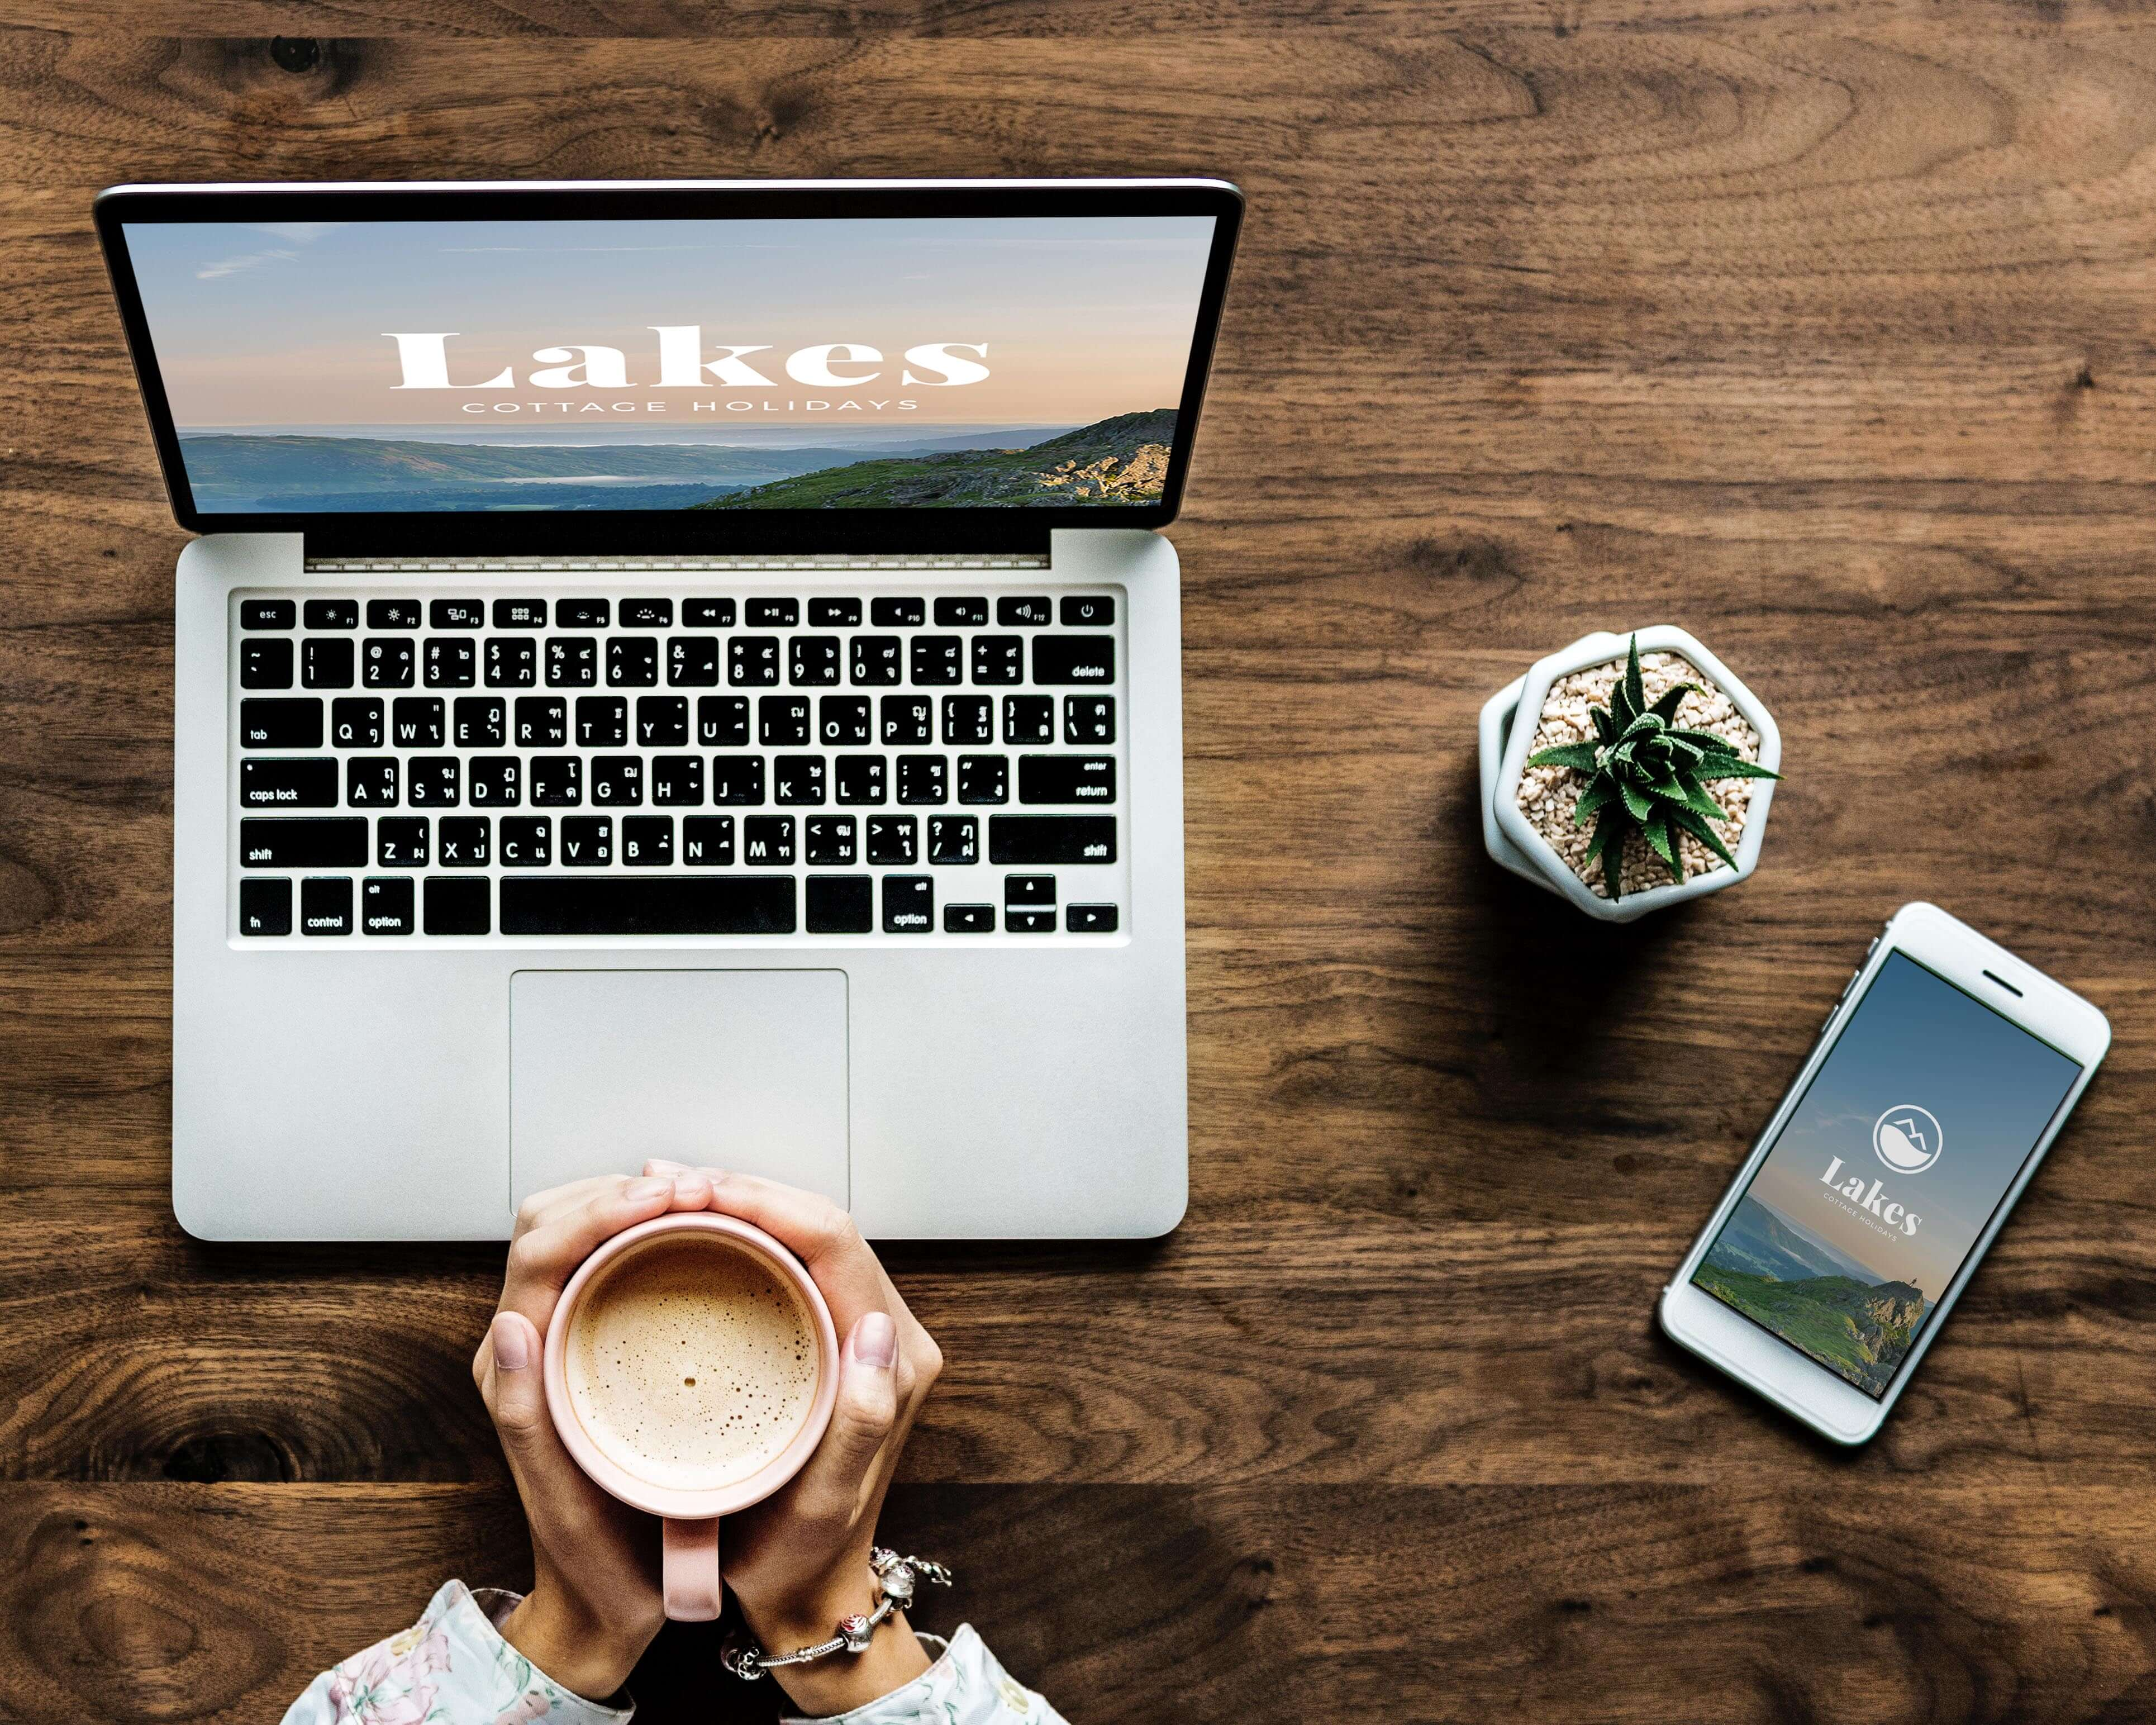 Marketing your holiday home with Lakes cottage holidays- website loaded onto a laptop and smartphone - flatlay image on a desk